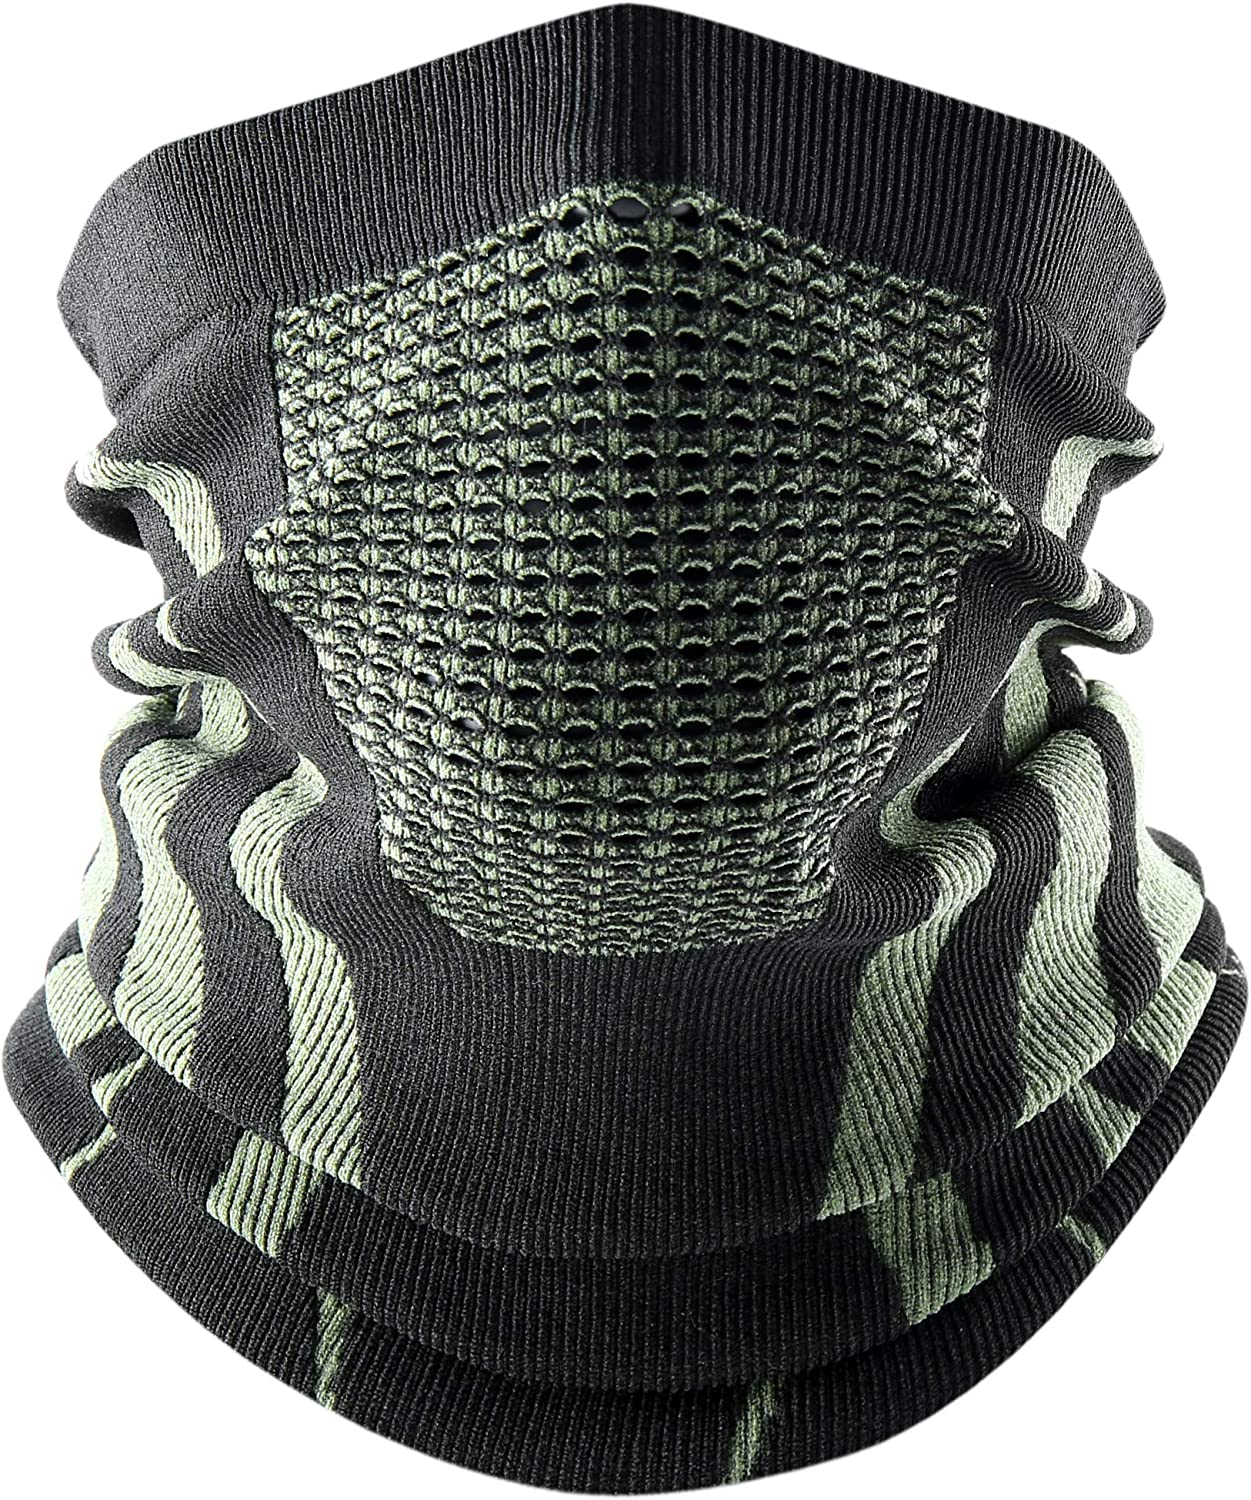 wtactful UPF At the price of surprise 50 Lightweight Cool Gaiter Protecti Department store Neck Mask Face